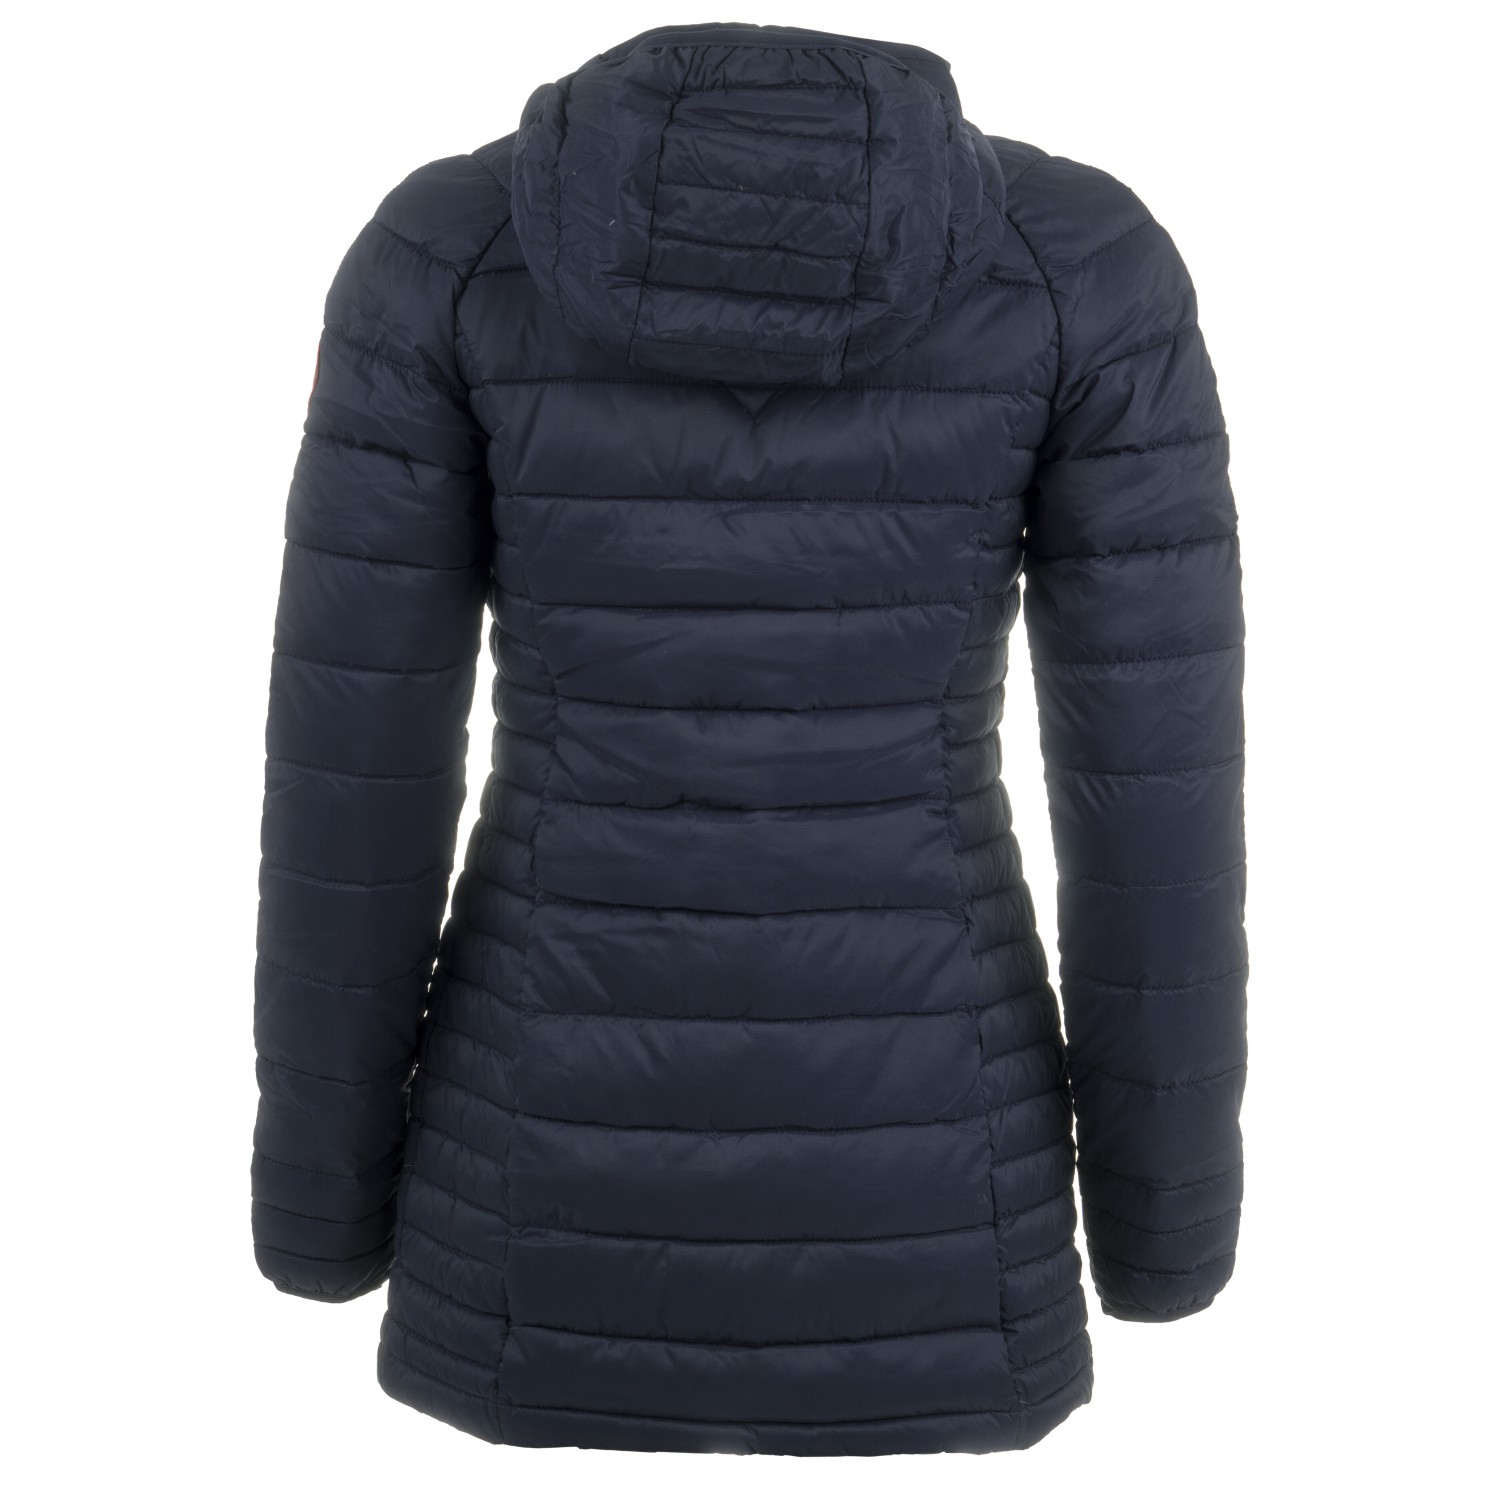 cfca4b041b1 ... Canada Goose - Women s Brookvale Hooded Coat - Winter jacket ...